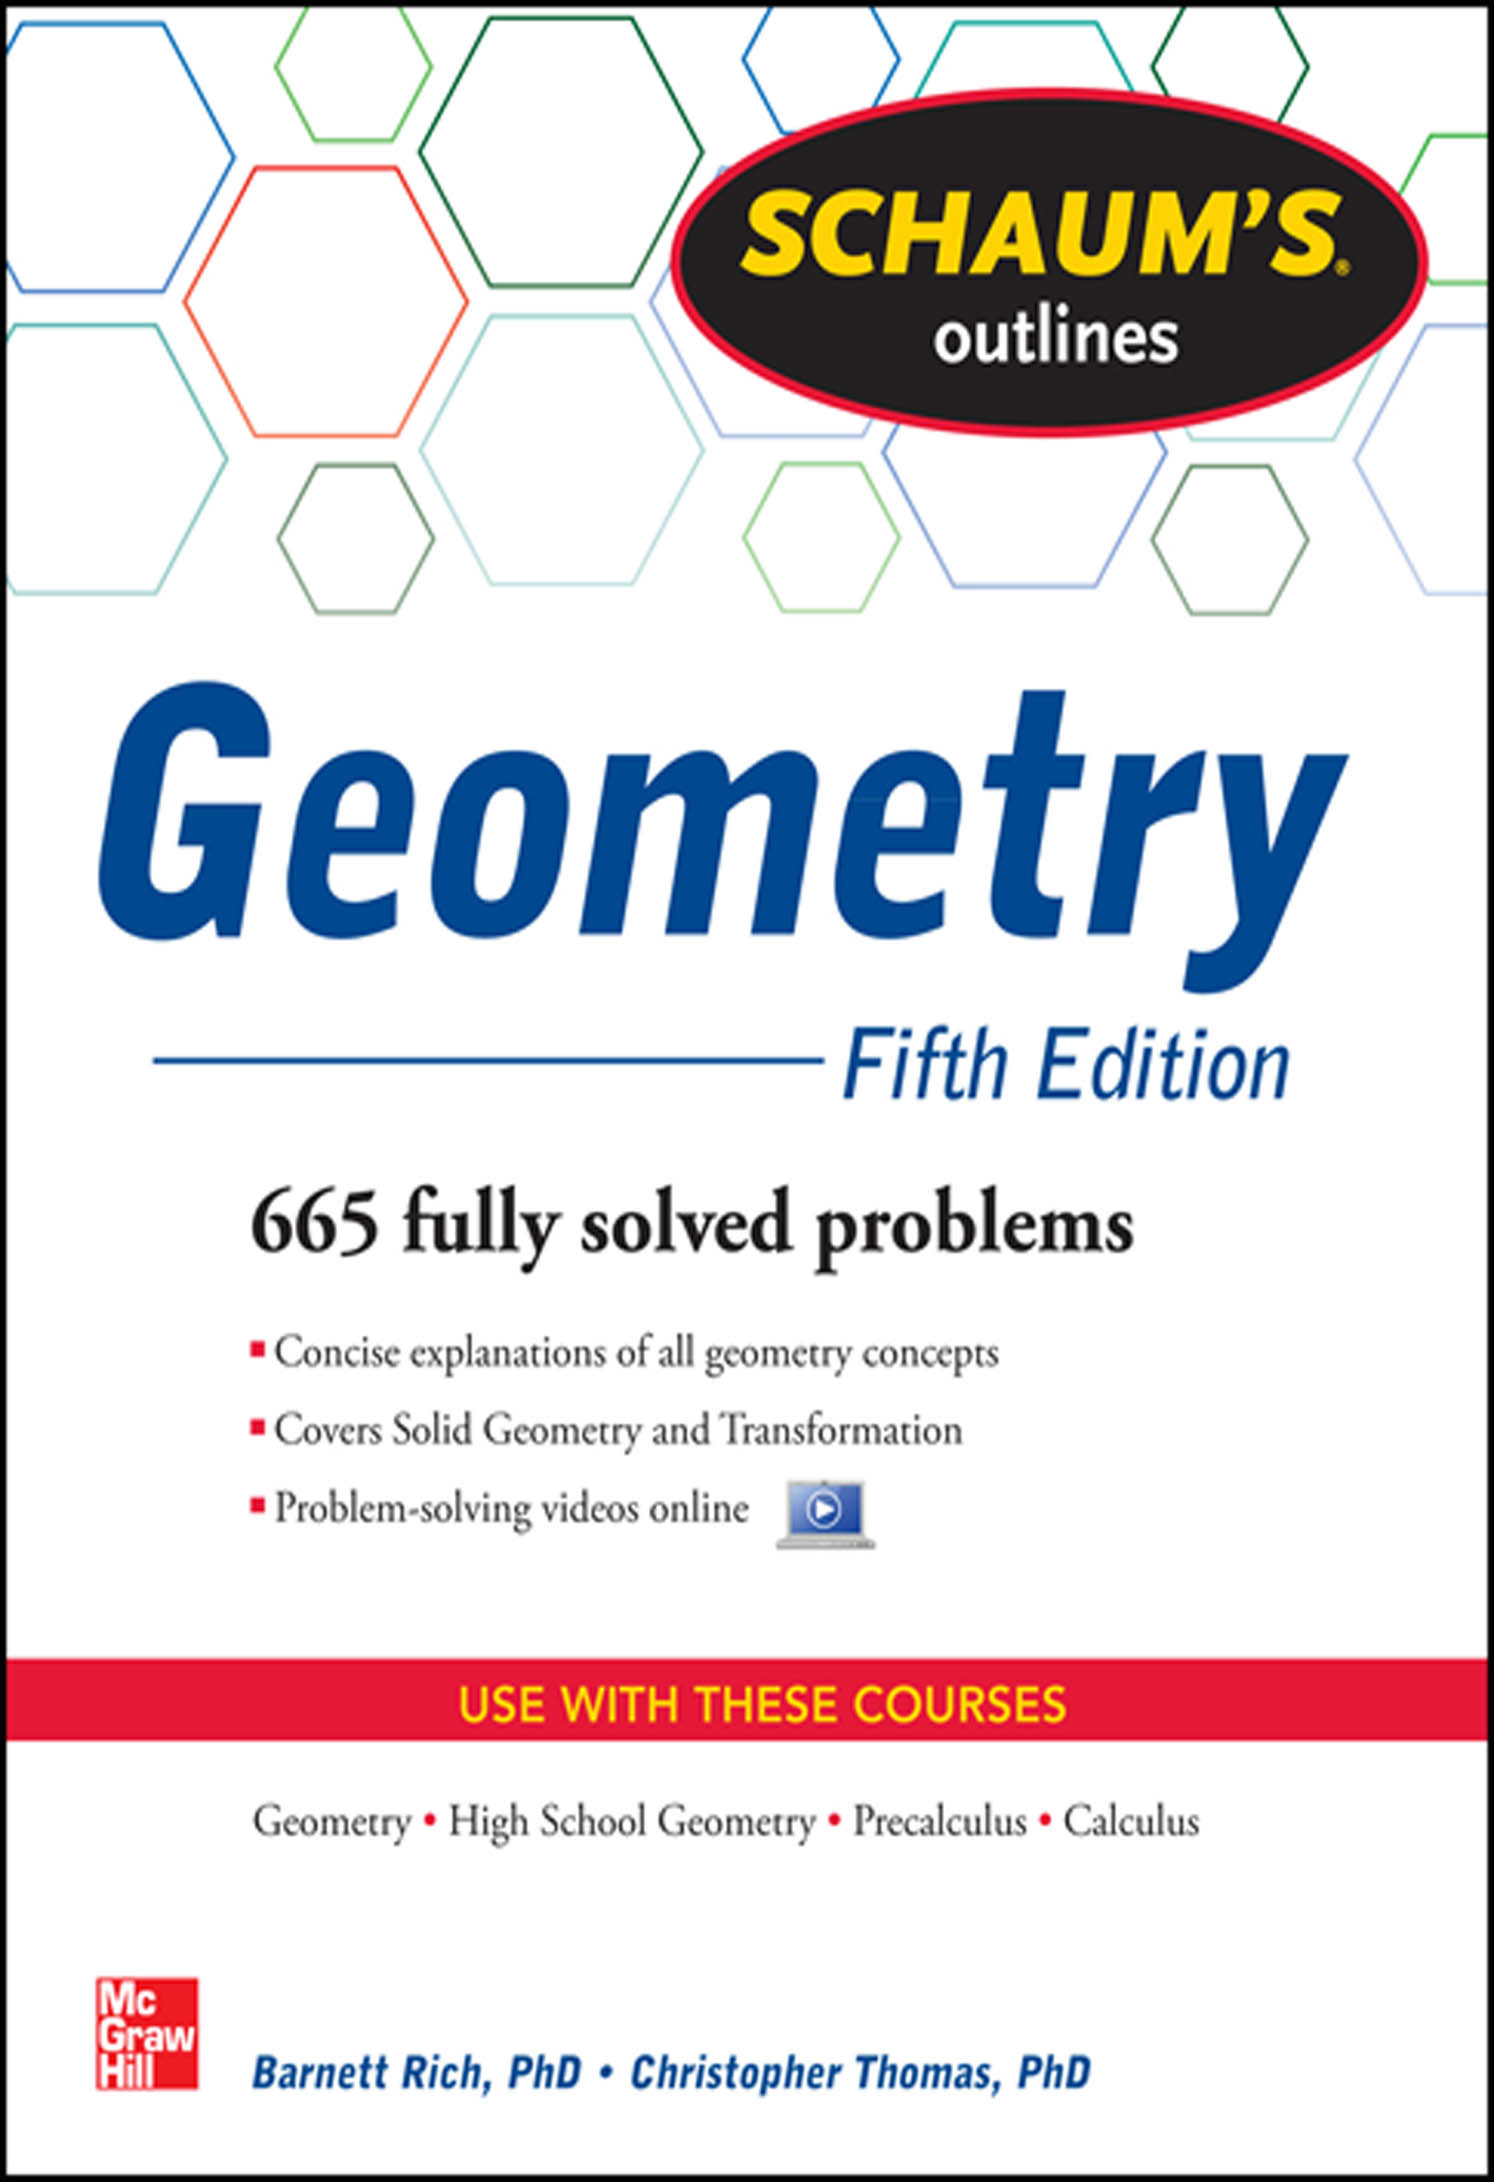 Schaum's Outline of Geometry, 5th Edition By:  Barnett Rich,Christopher Thomas